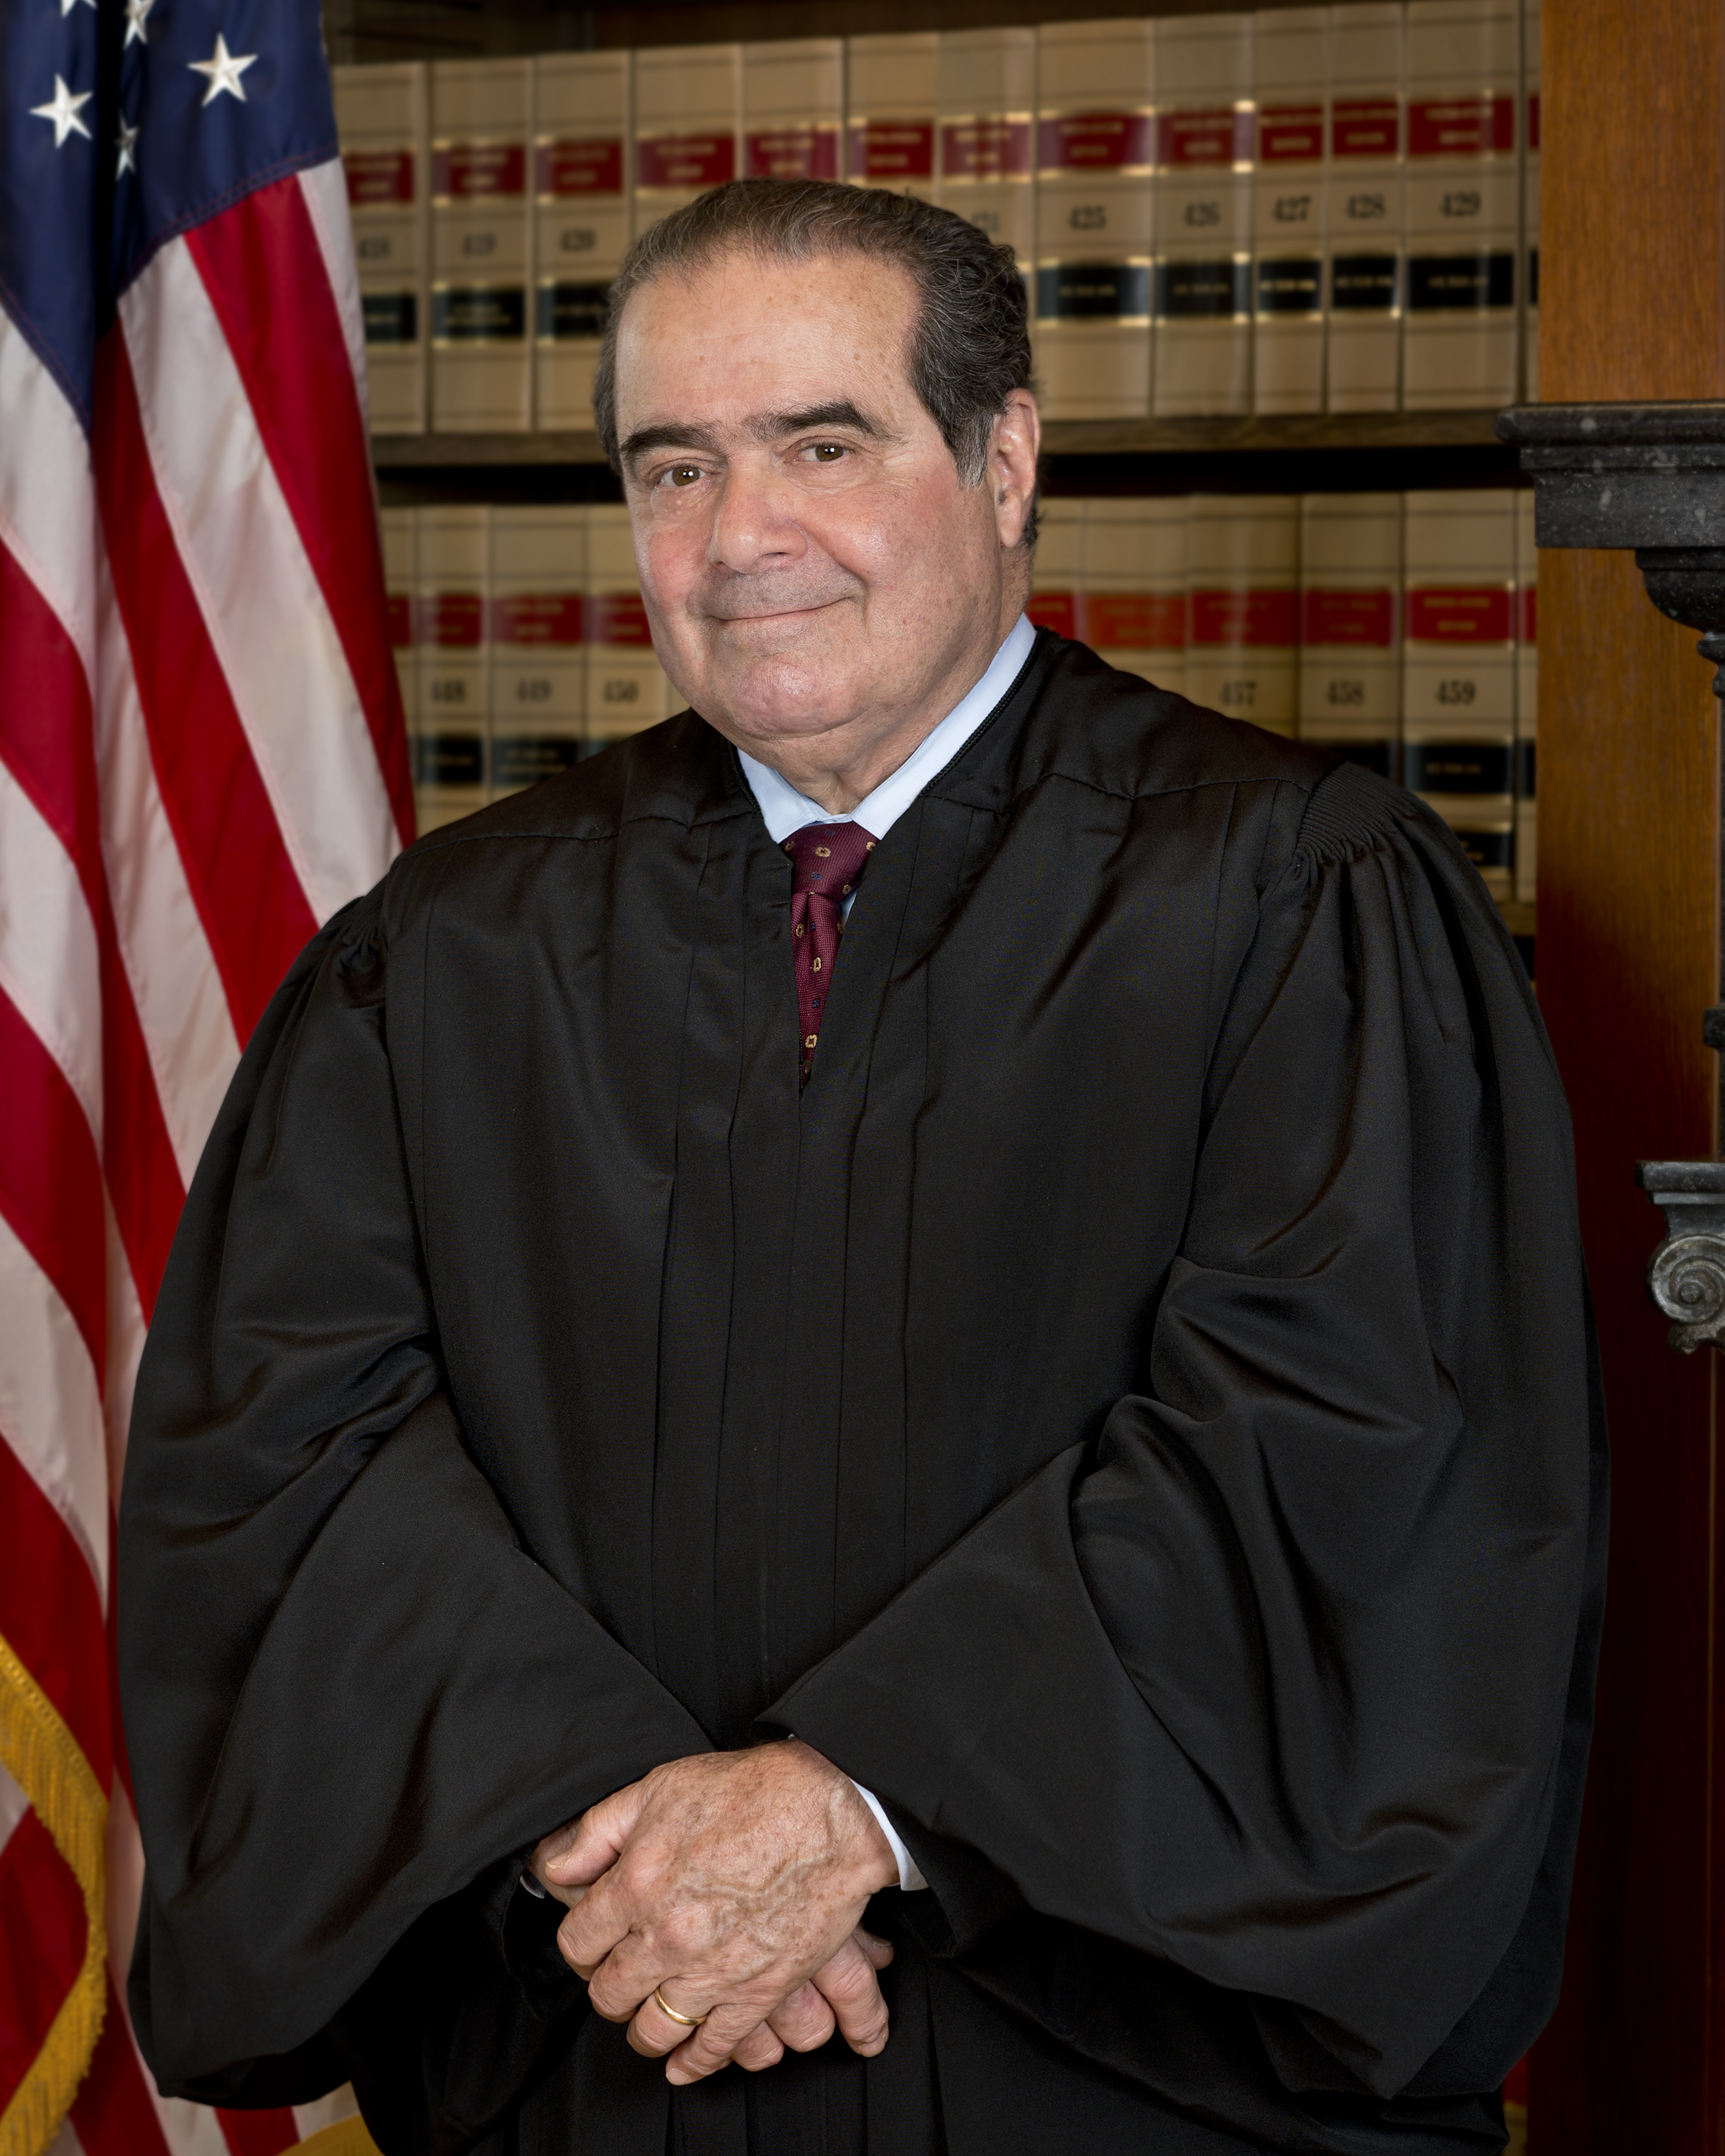 antonin-scalia-dies-at-79.jpg